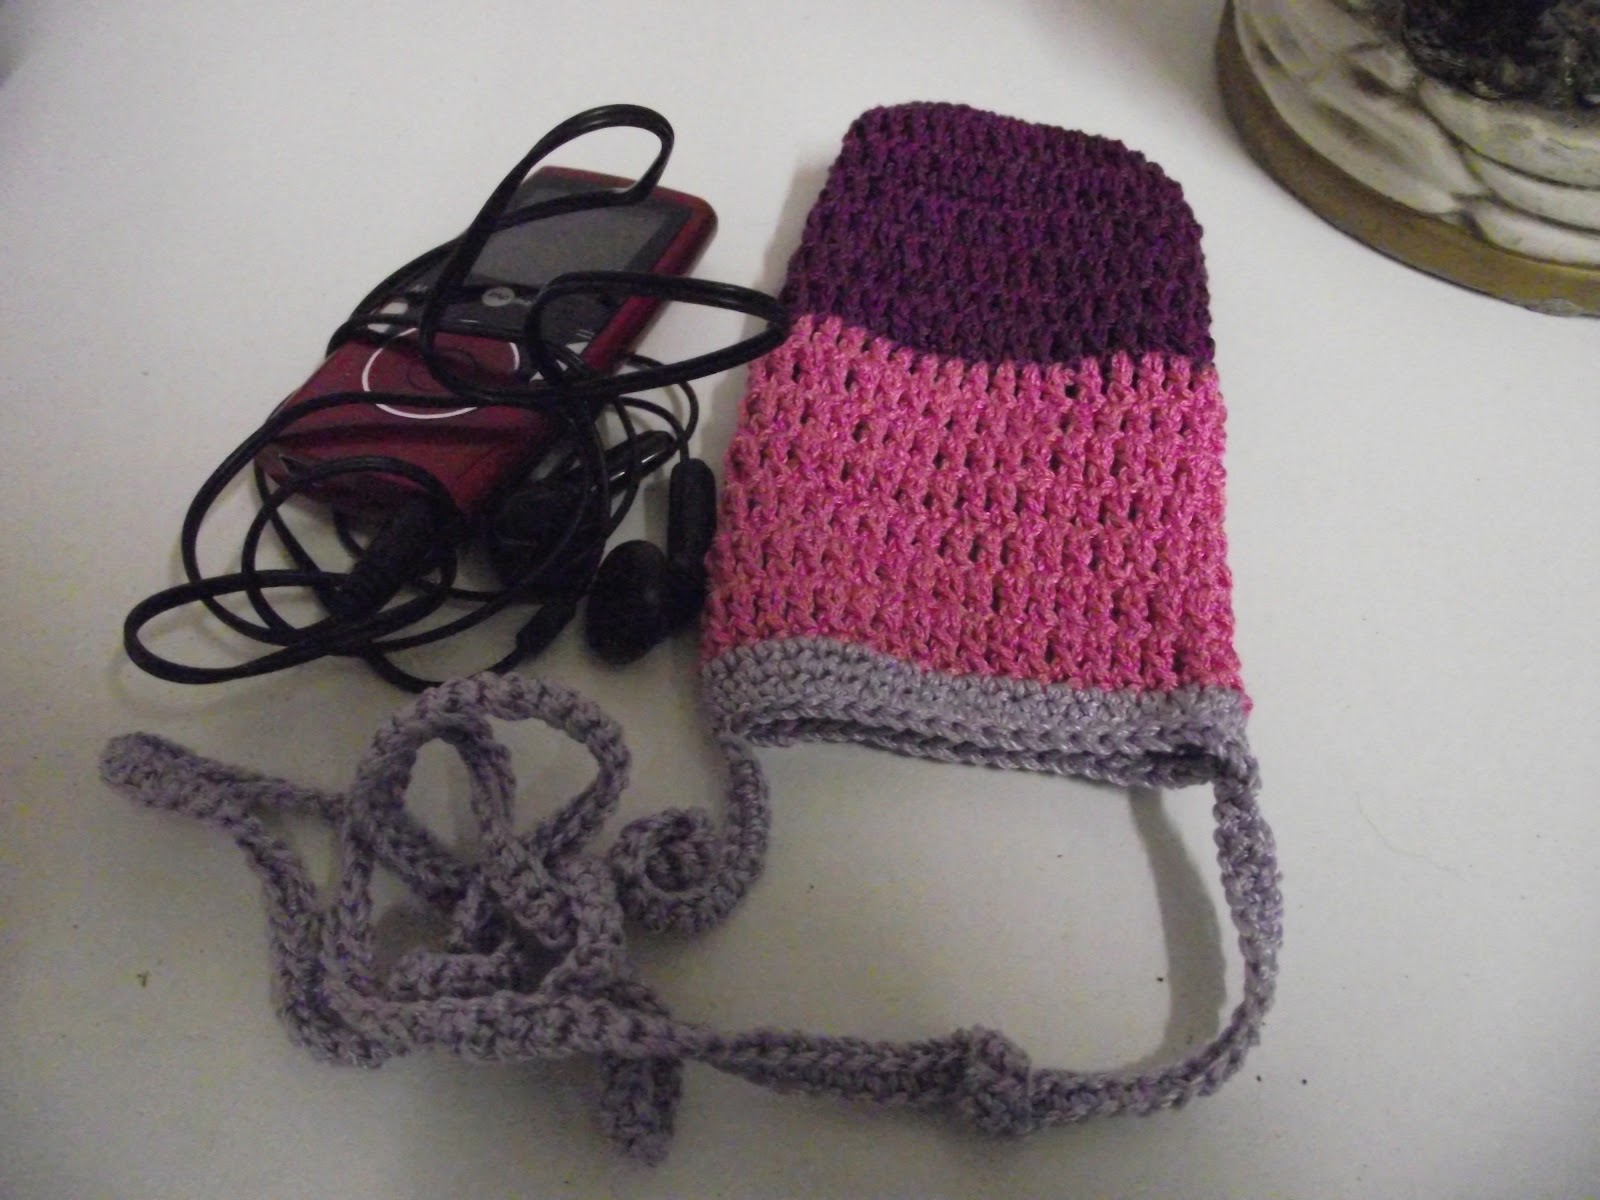 Crochet Et Tricot Facile Avec Explications Etui Mp3 Au Crochet